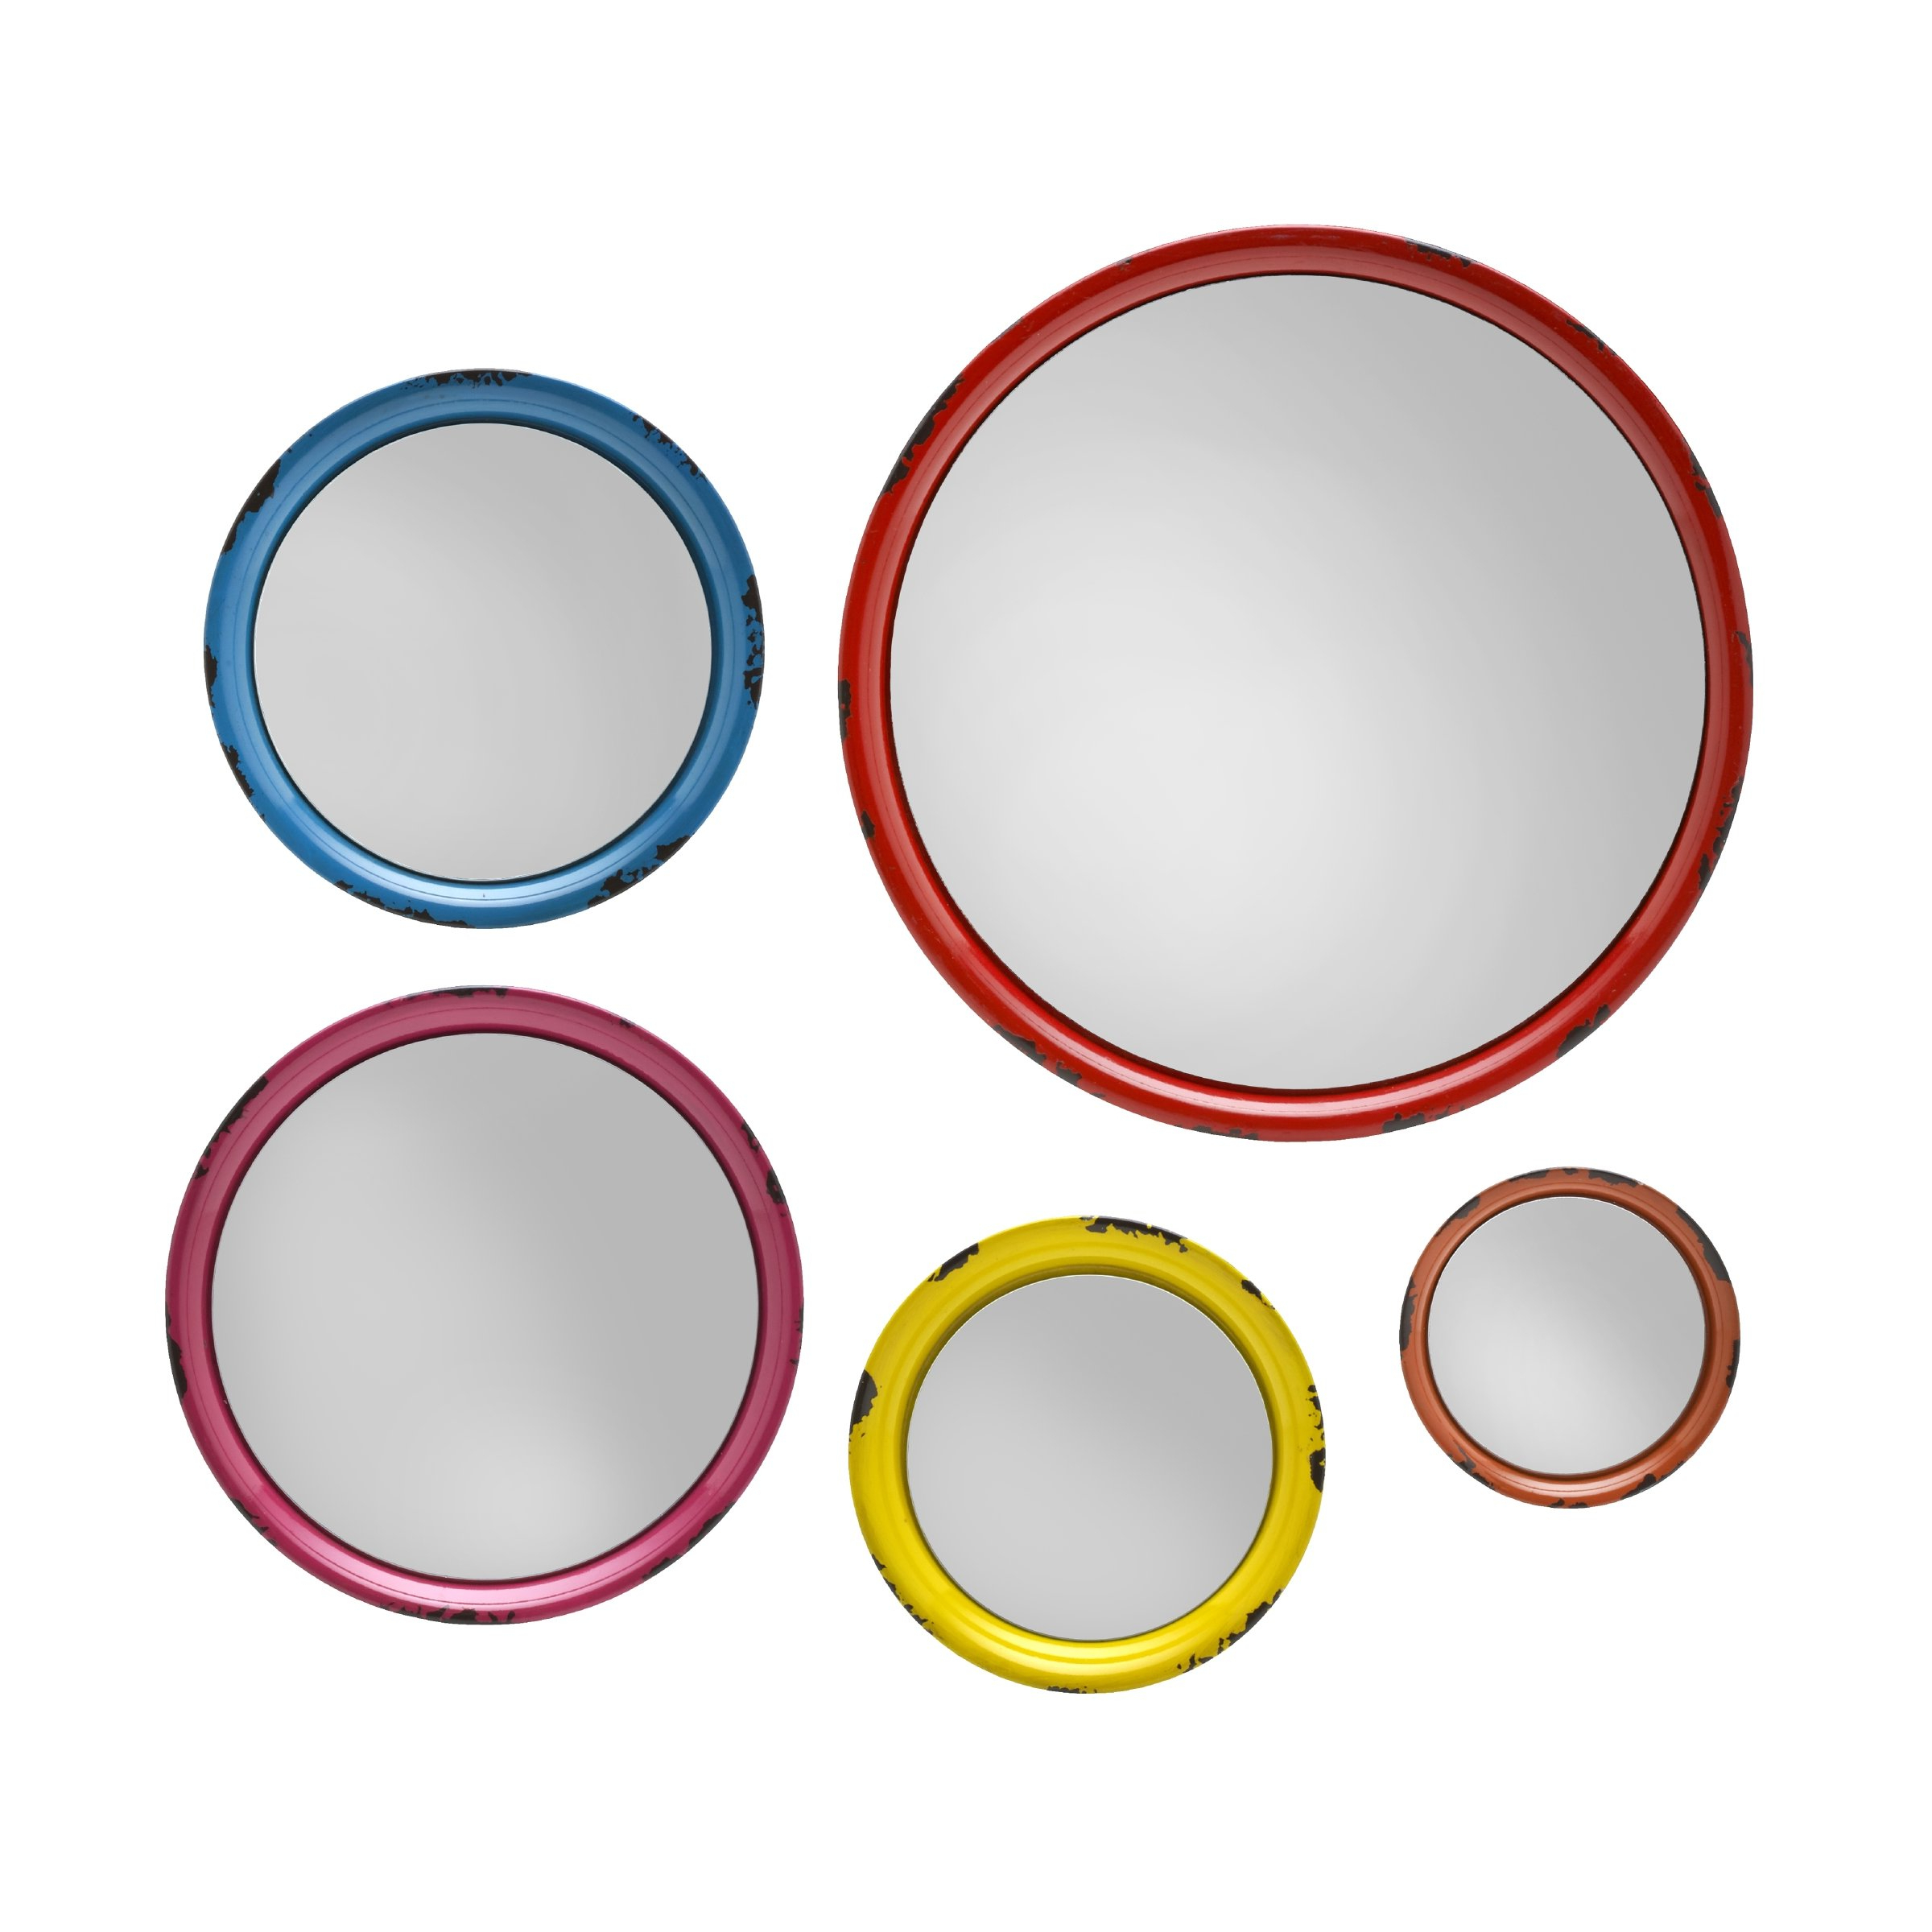 5 Piece Round Wall Mirror Set Regarding Most Recently Released Carstens Sunburst Leaves Wall Mirrors (View 19 of 20)